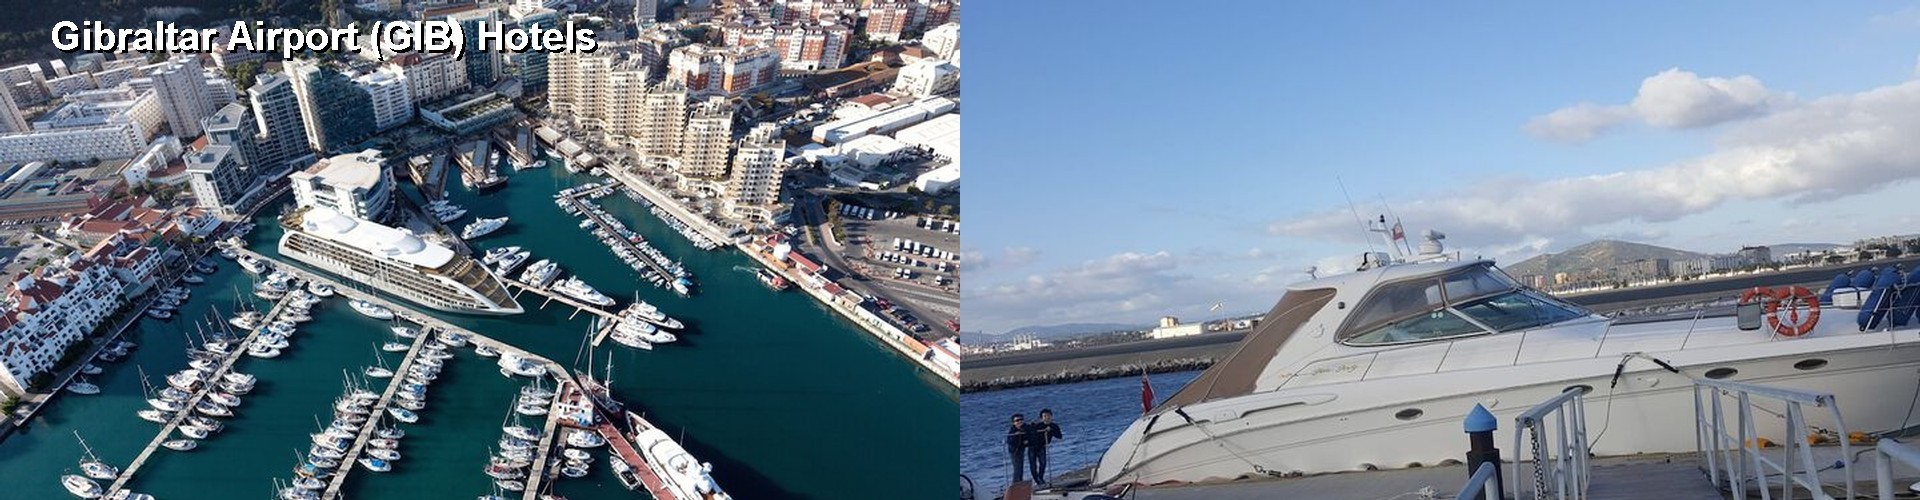 5 Best Hotels near Gibraltar Airport (GIB)